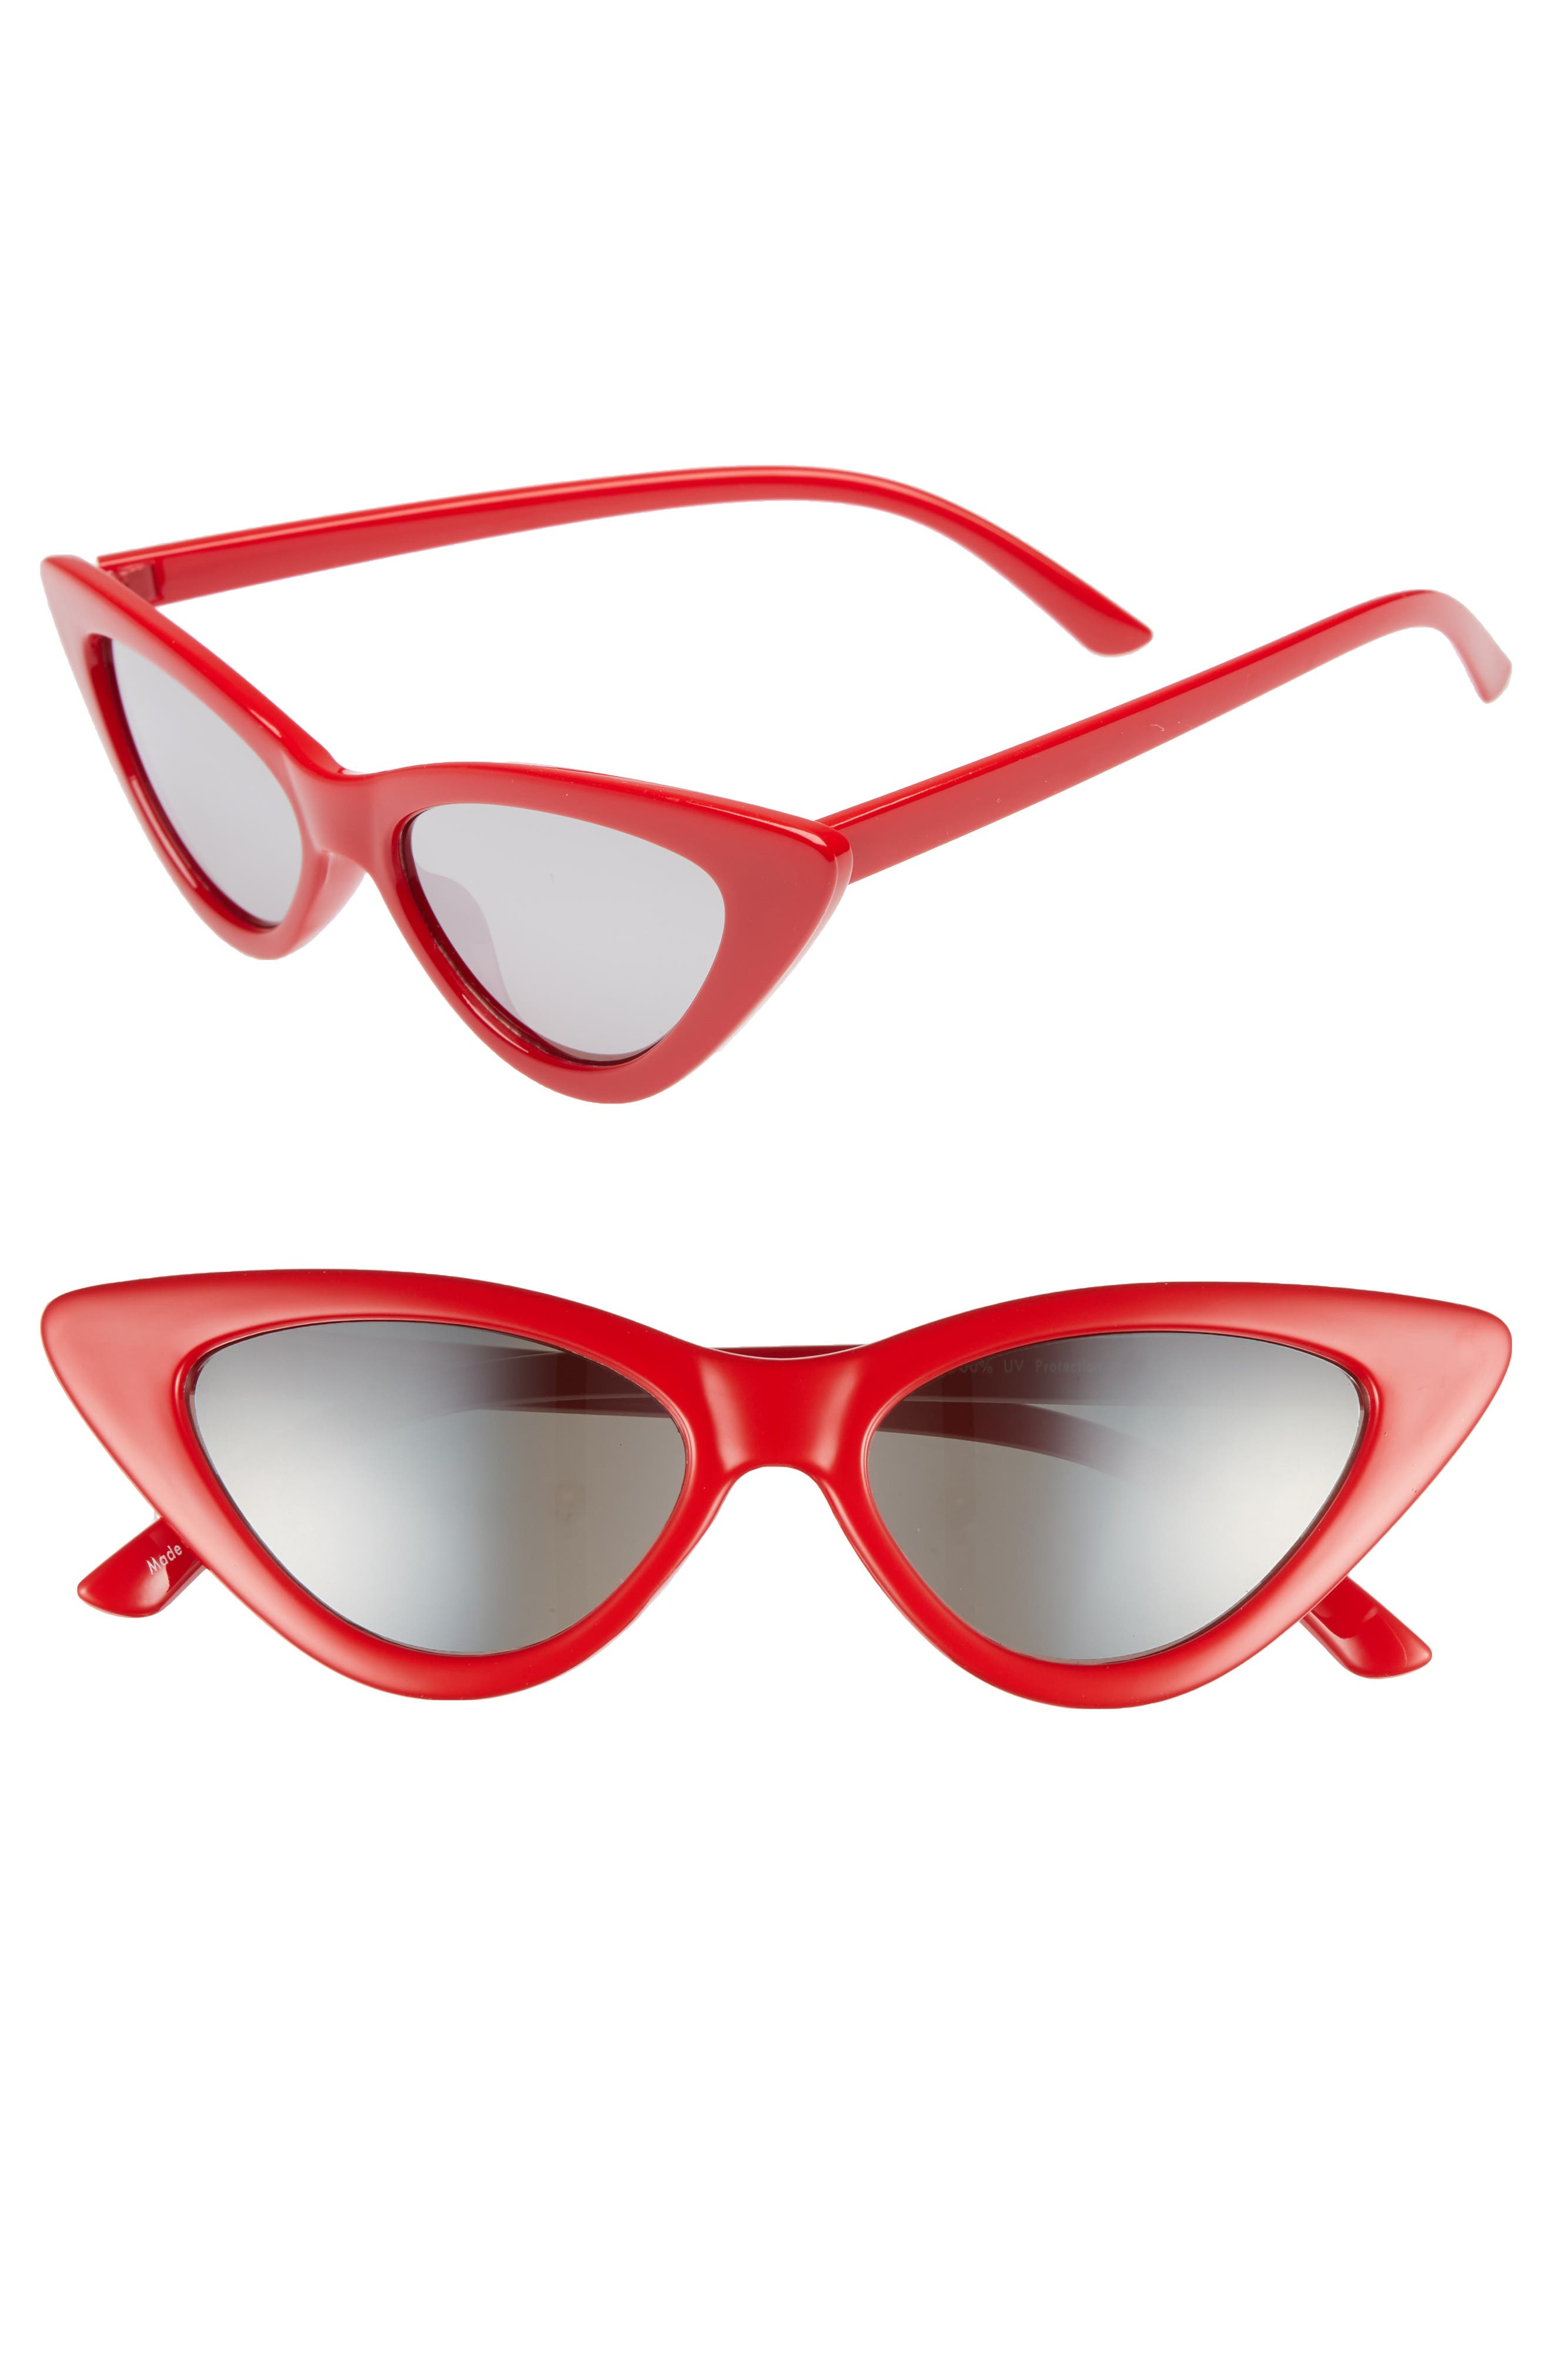 62mm Cat Eye Sunglasses,                             Main thumbnail 1, color,                             Red/ Silver